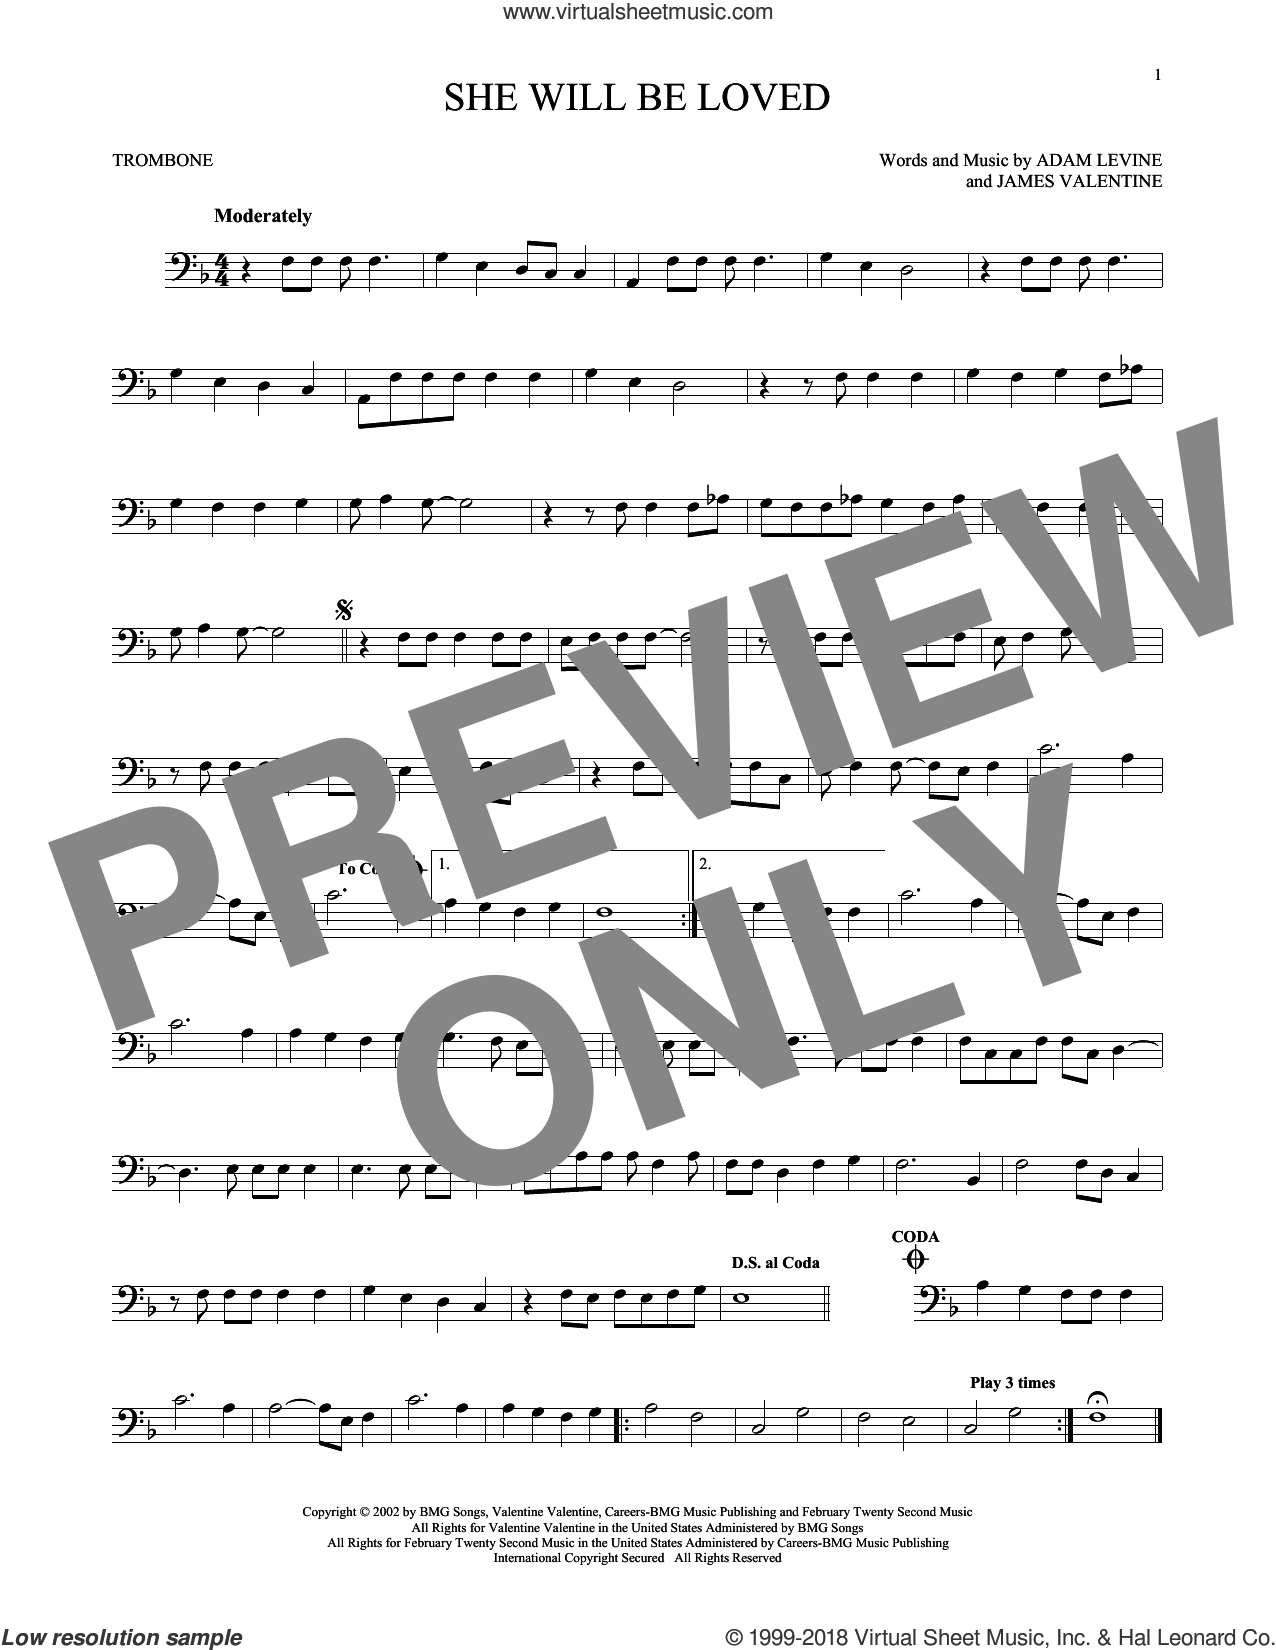 She Will Be Loved sheet music for trombone solo by Maroon 5, Adam Levine and James Valentine, intermediate skill level